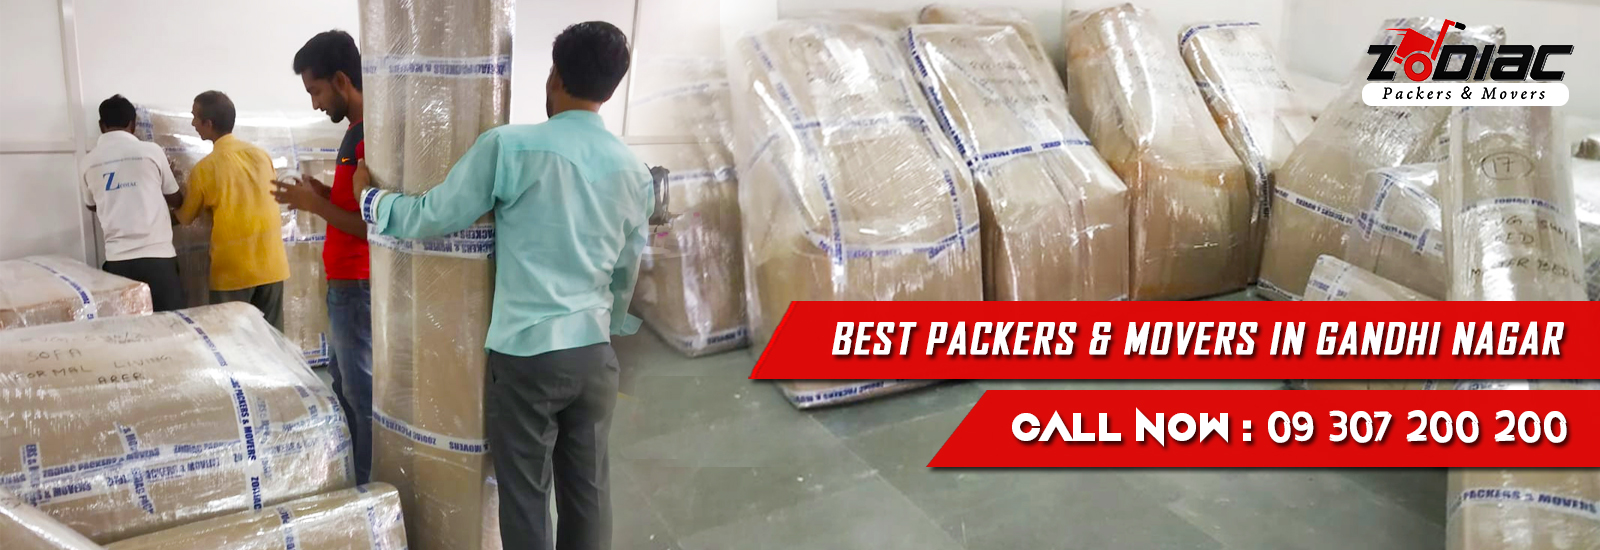 Packers and Movers in Gandhi Nagar